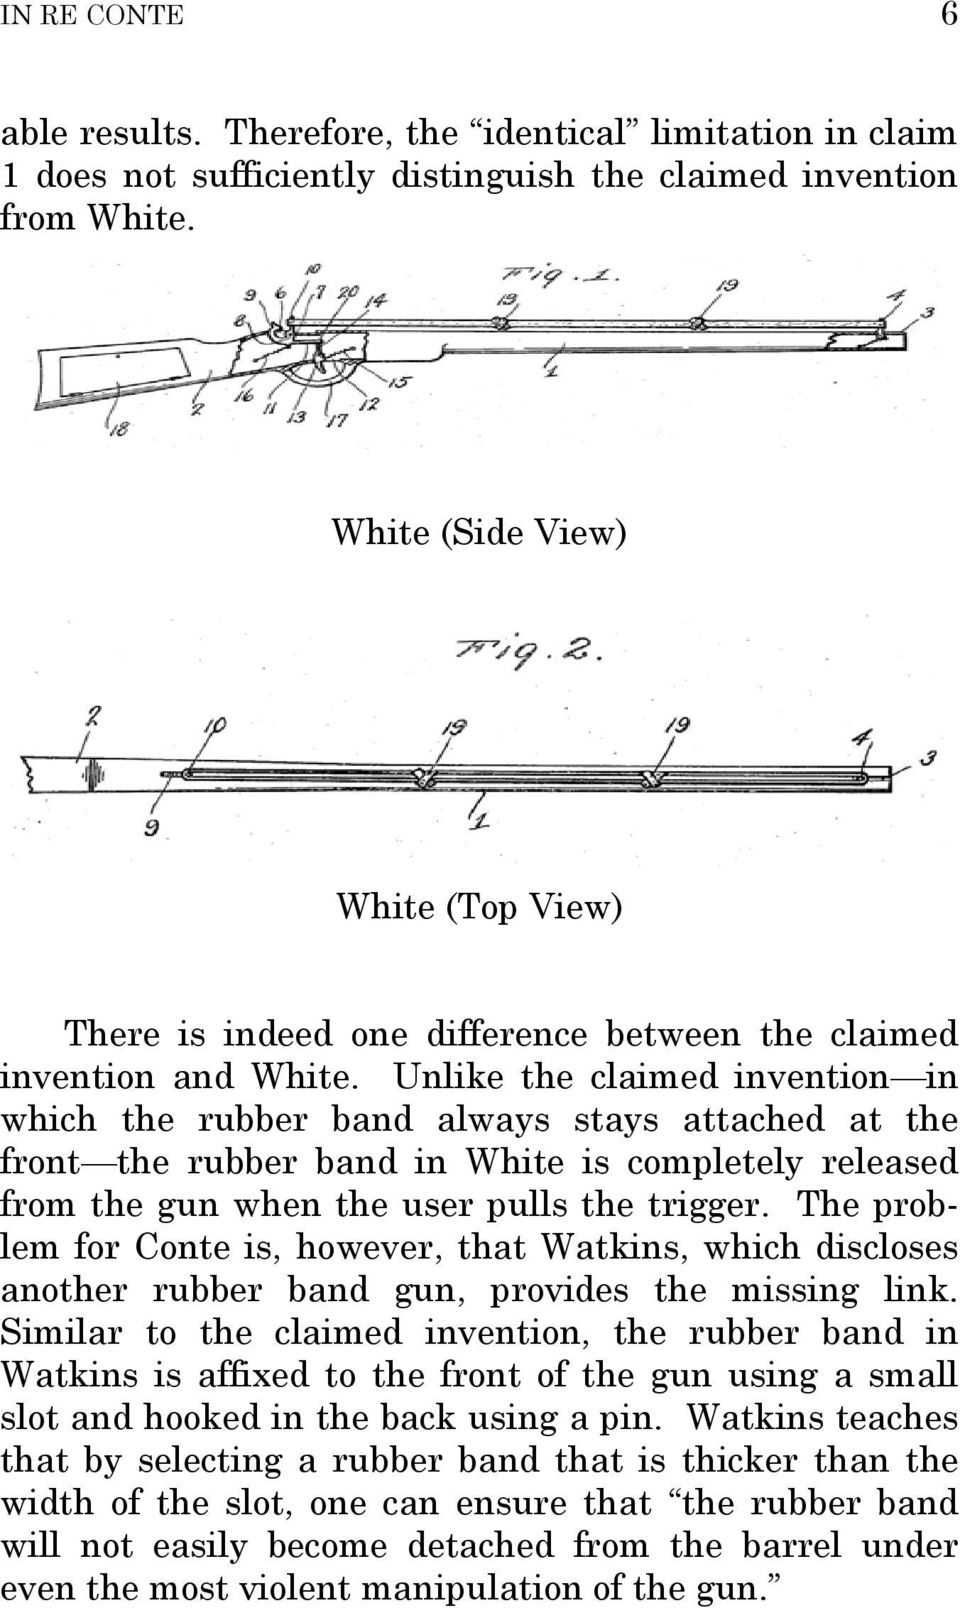 Unlike the claimed invention in which the rubber band always stays attached at the front the rubber band in White is completely released from the gun when the user pulls the trigger.